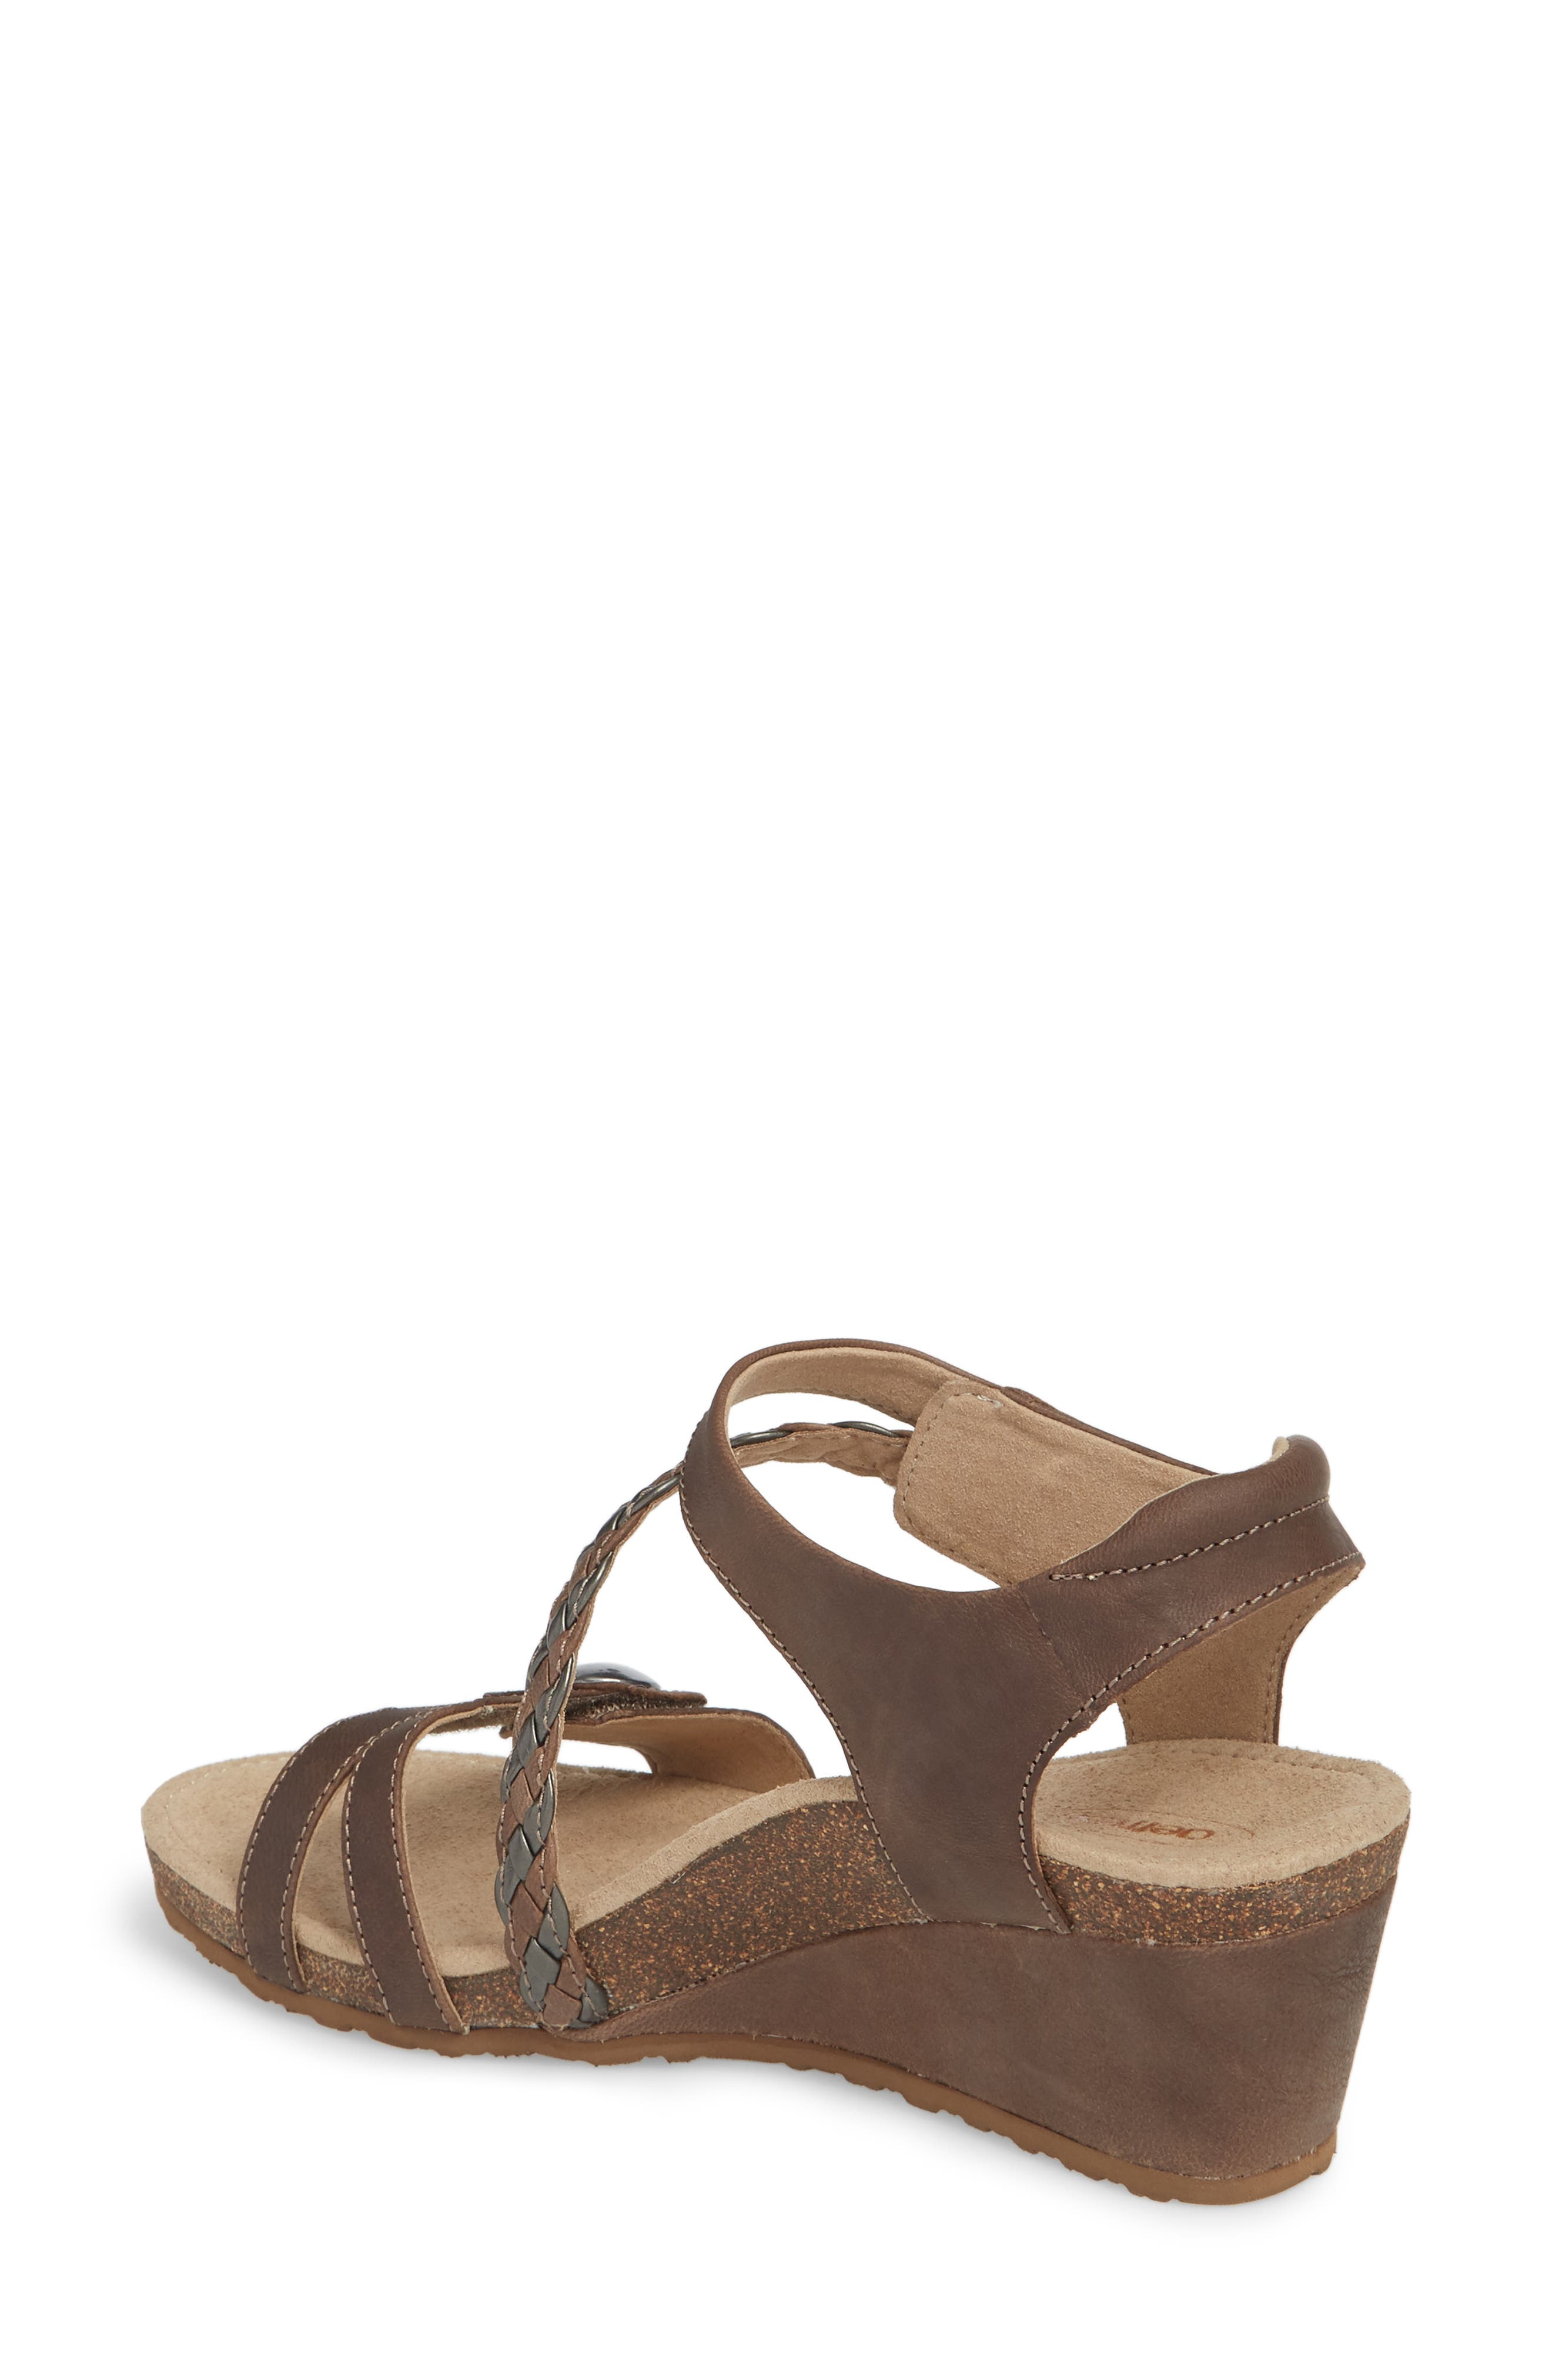 'Naya' Wedge Sandal,                             Alternate thumbnail 2, color,                             STONE LEATHER